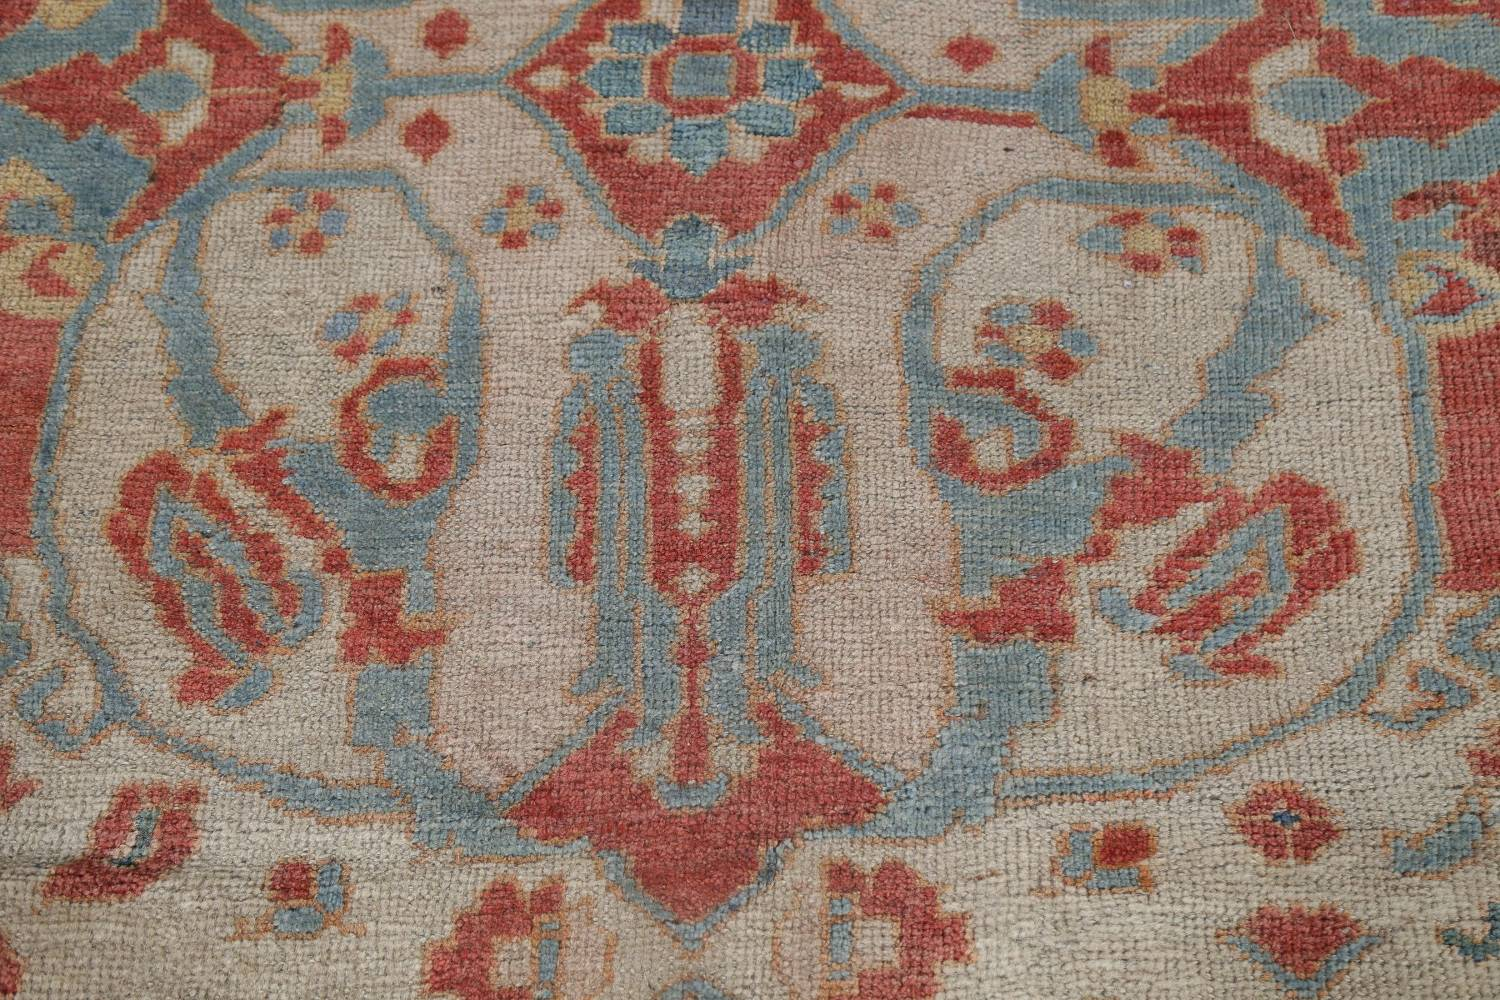 Palace Size Pre-1900 Antique Sultanabad Persian Rug 14x24 image 10